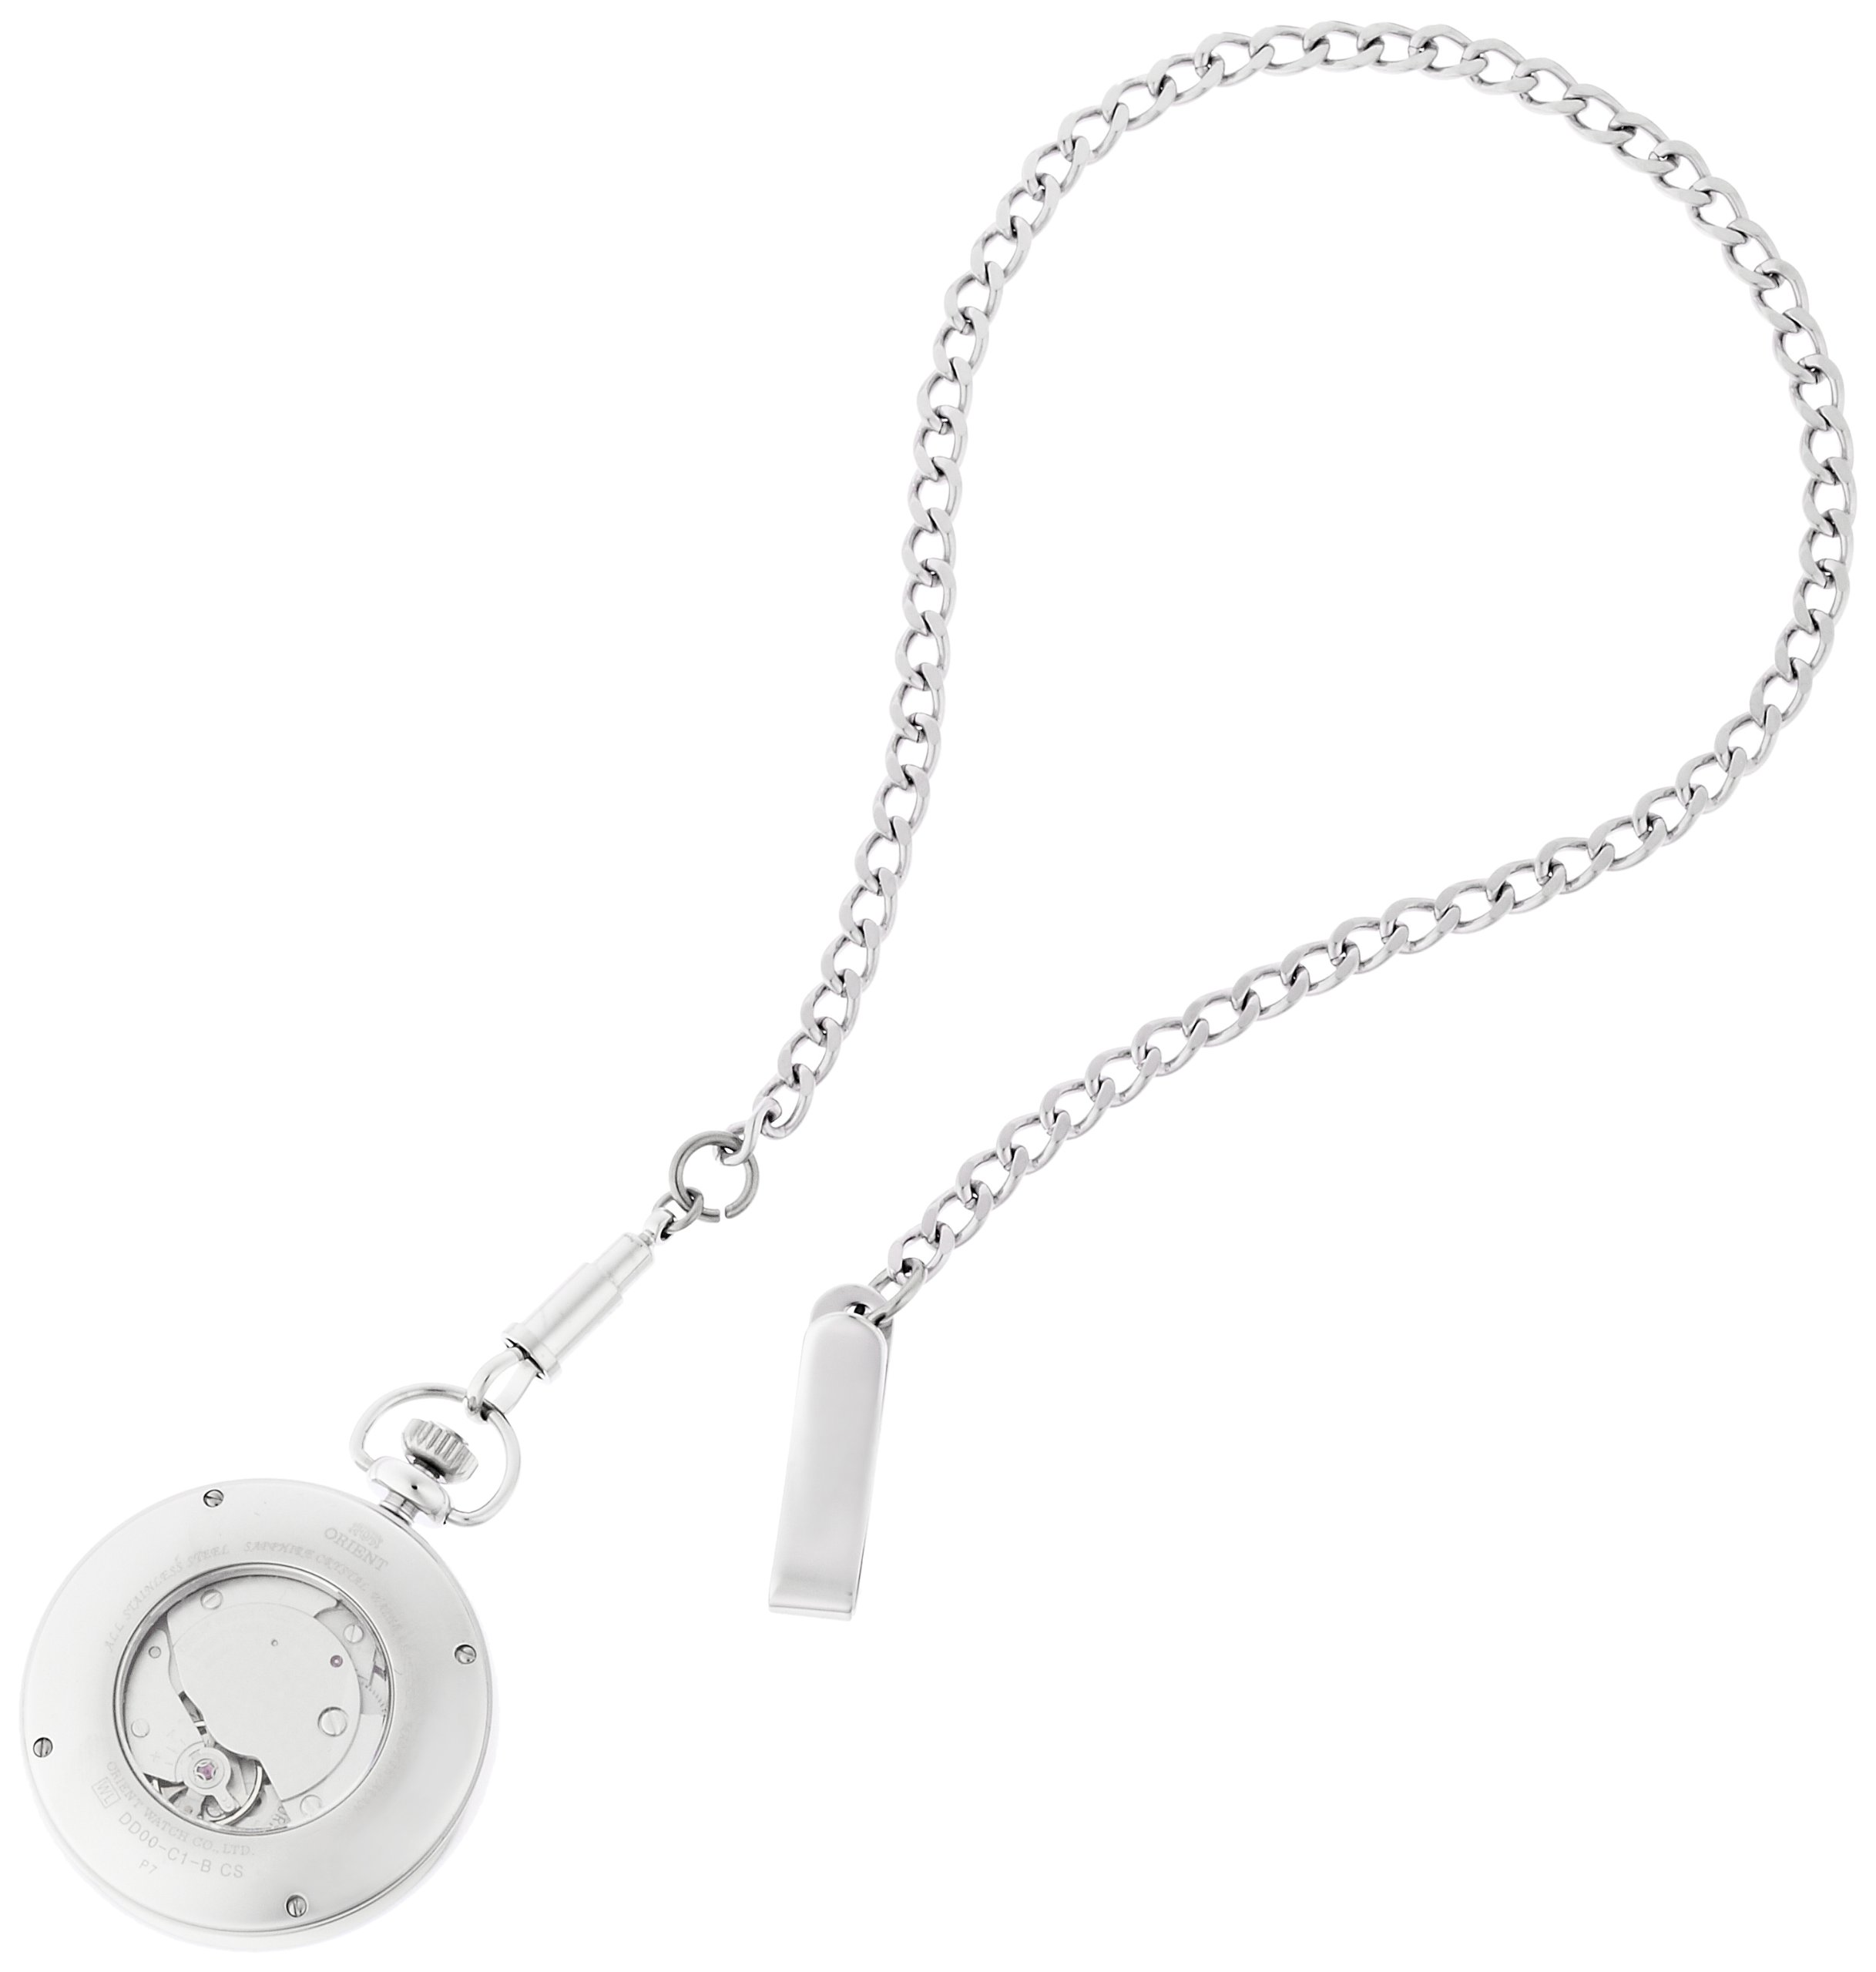 ORIENT WORLD STAGE Collection pocket watch hand winding sapphire glass WV0031DD by ORIENT (Image #2)